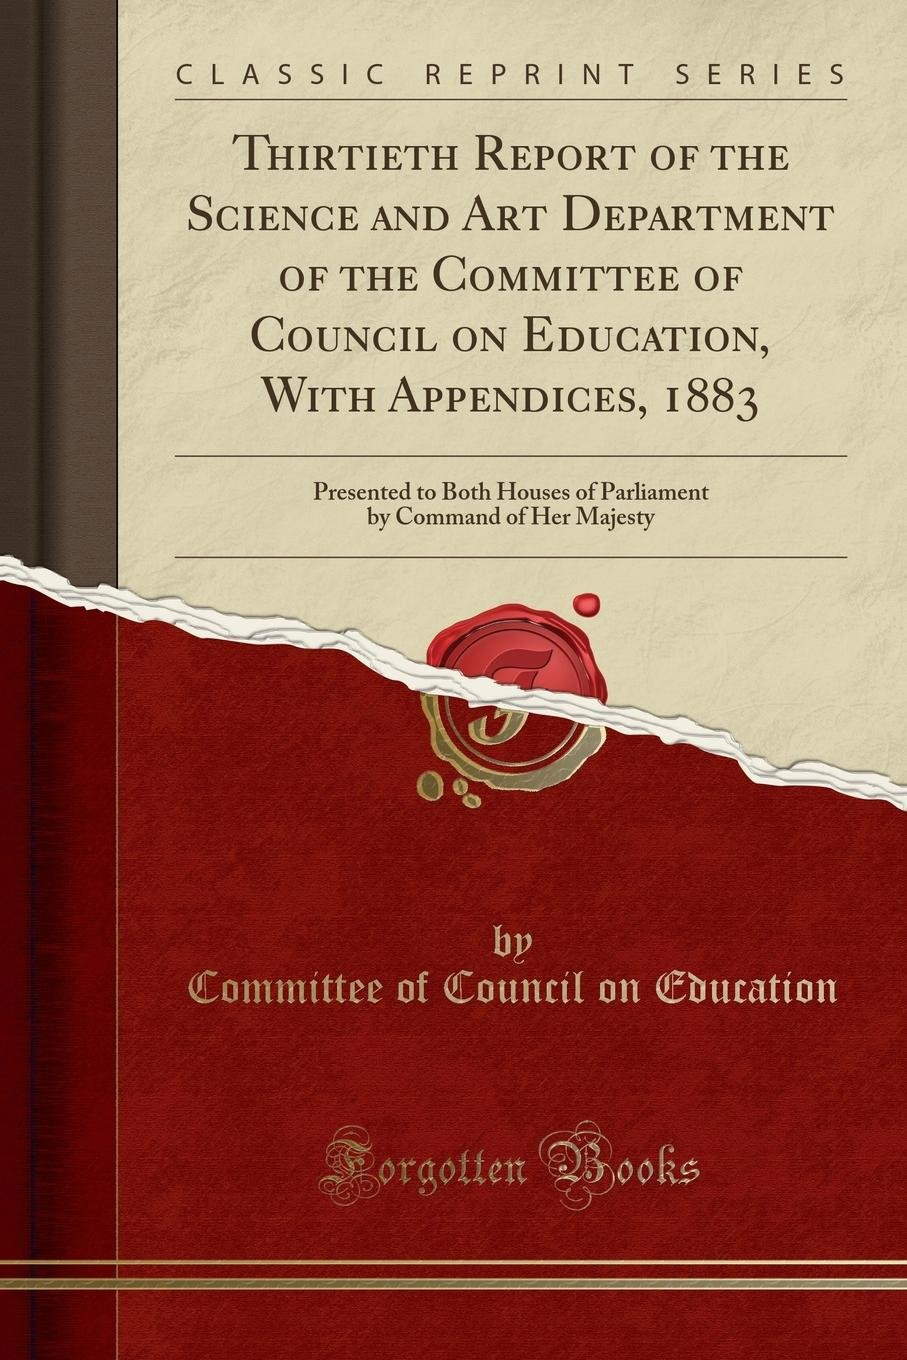 Download Thirtieth Report of the Science and Art Department of the Committee of Council on Education, with Appendices, 1883: Presented to Both Houses of Parliament by Command of Her Majesty (Classic Reprint) pdf epub